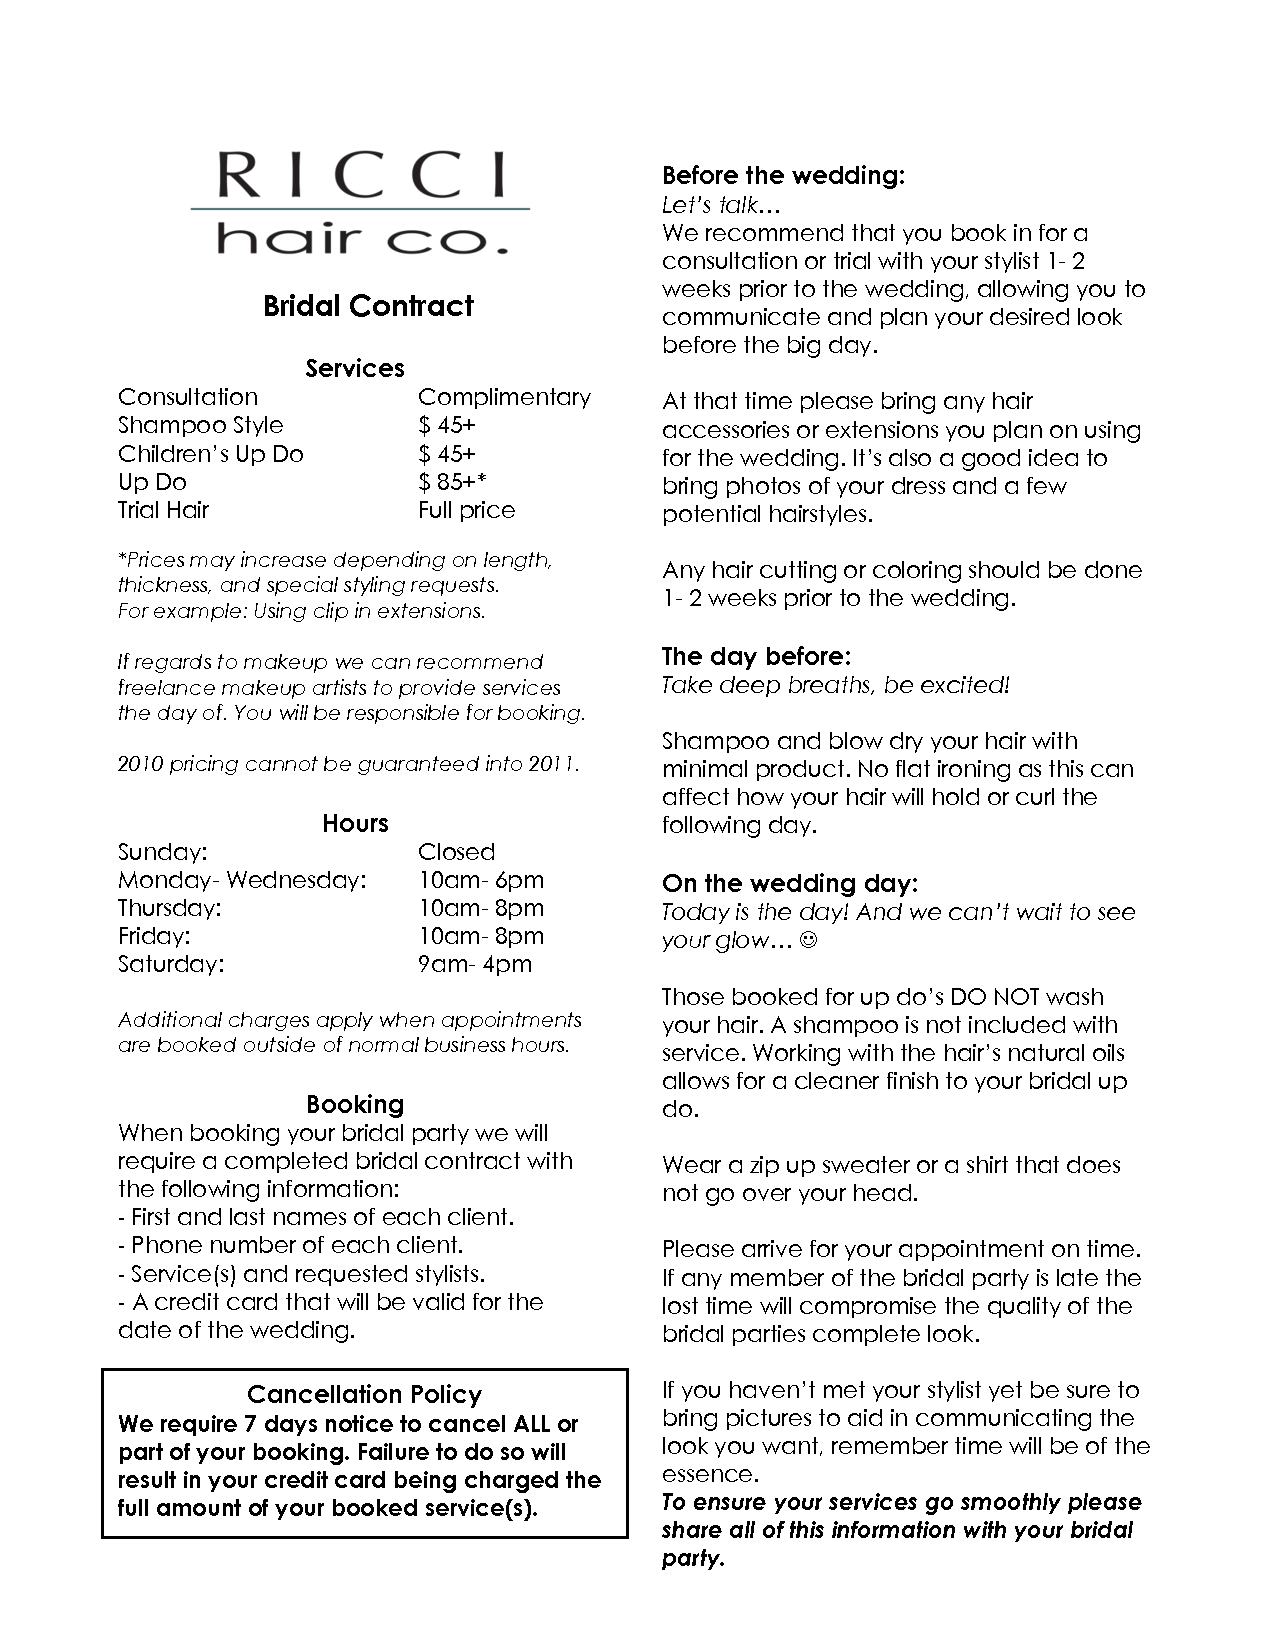 bridalhaircotract | Bridal Hair Stylist Contract | Business cards ...